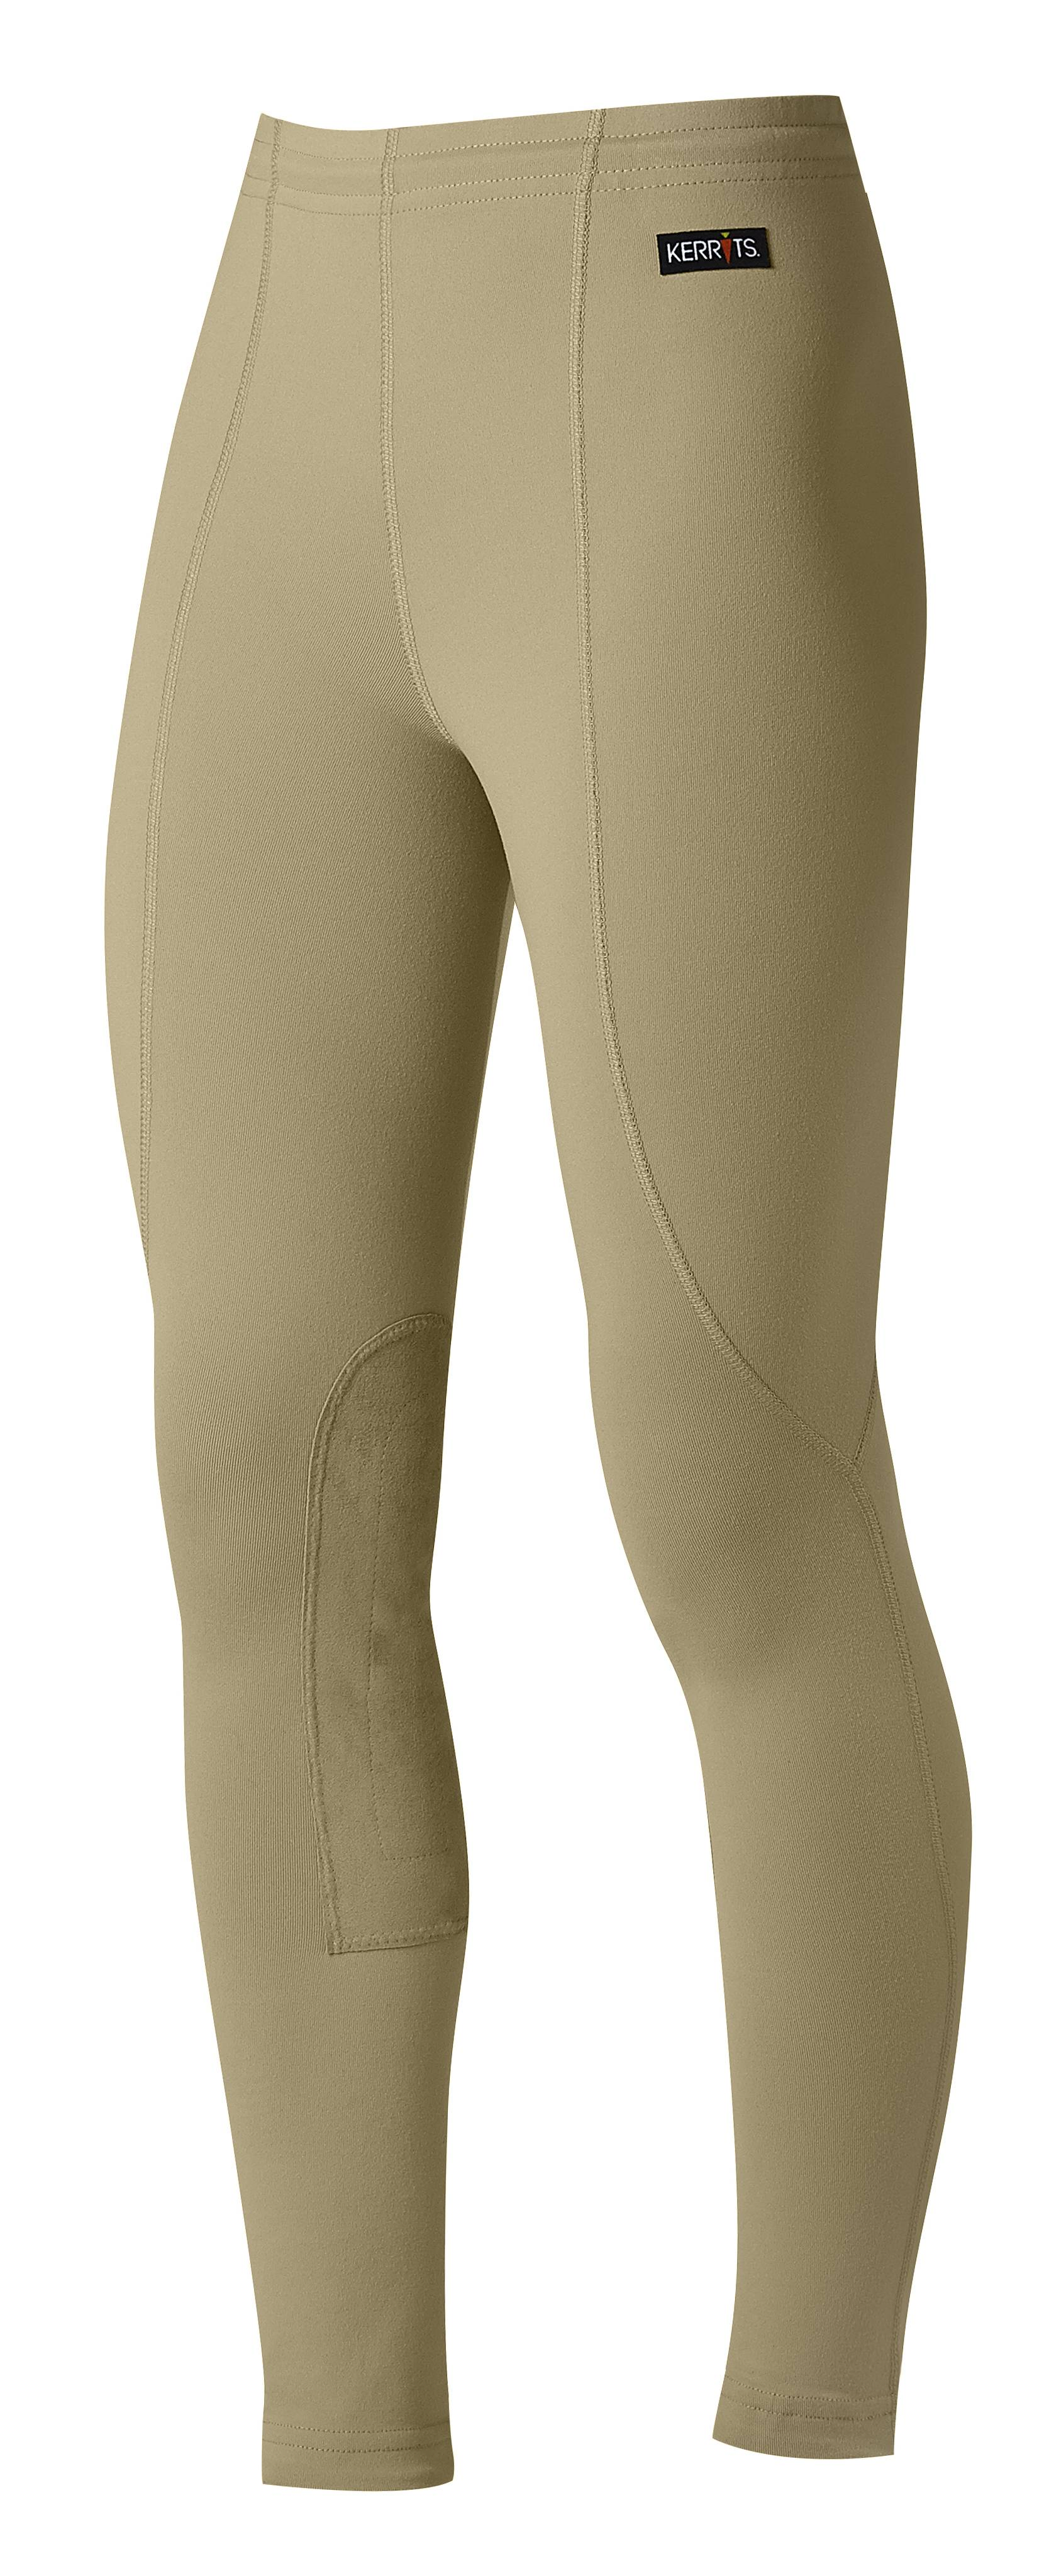 Kerrits Performance Riding Tights - Kids